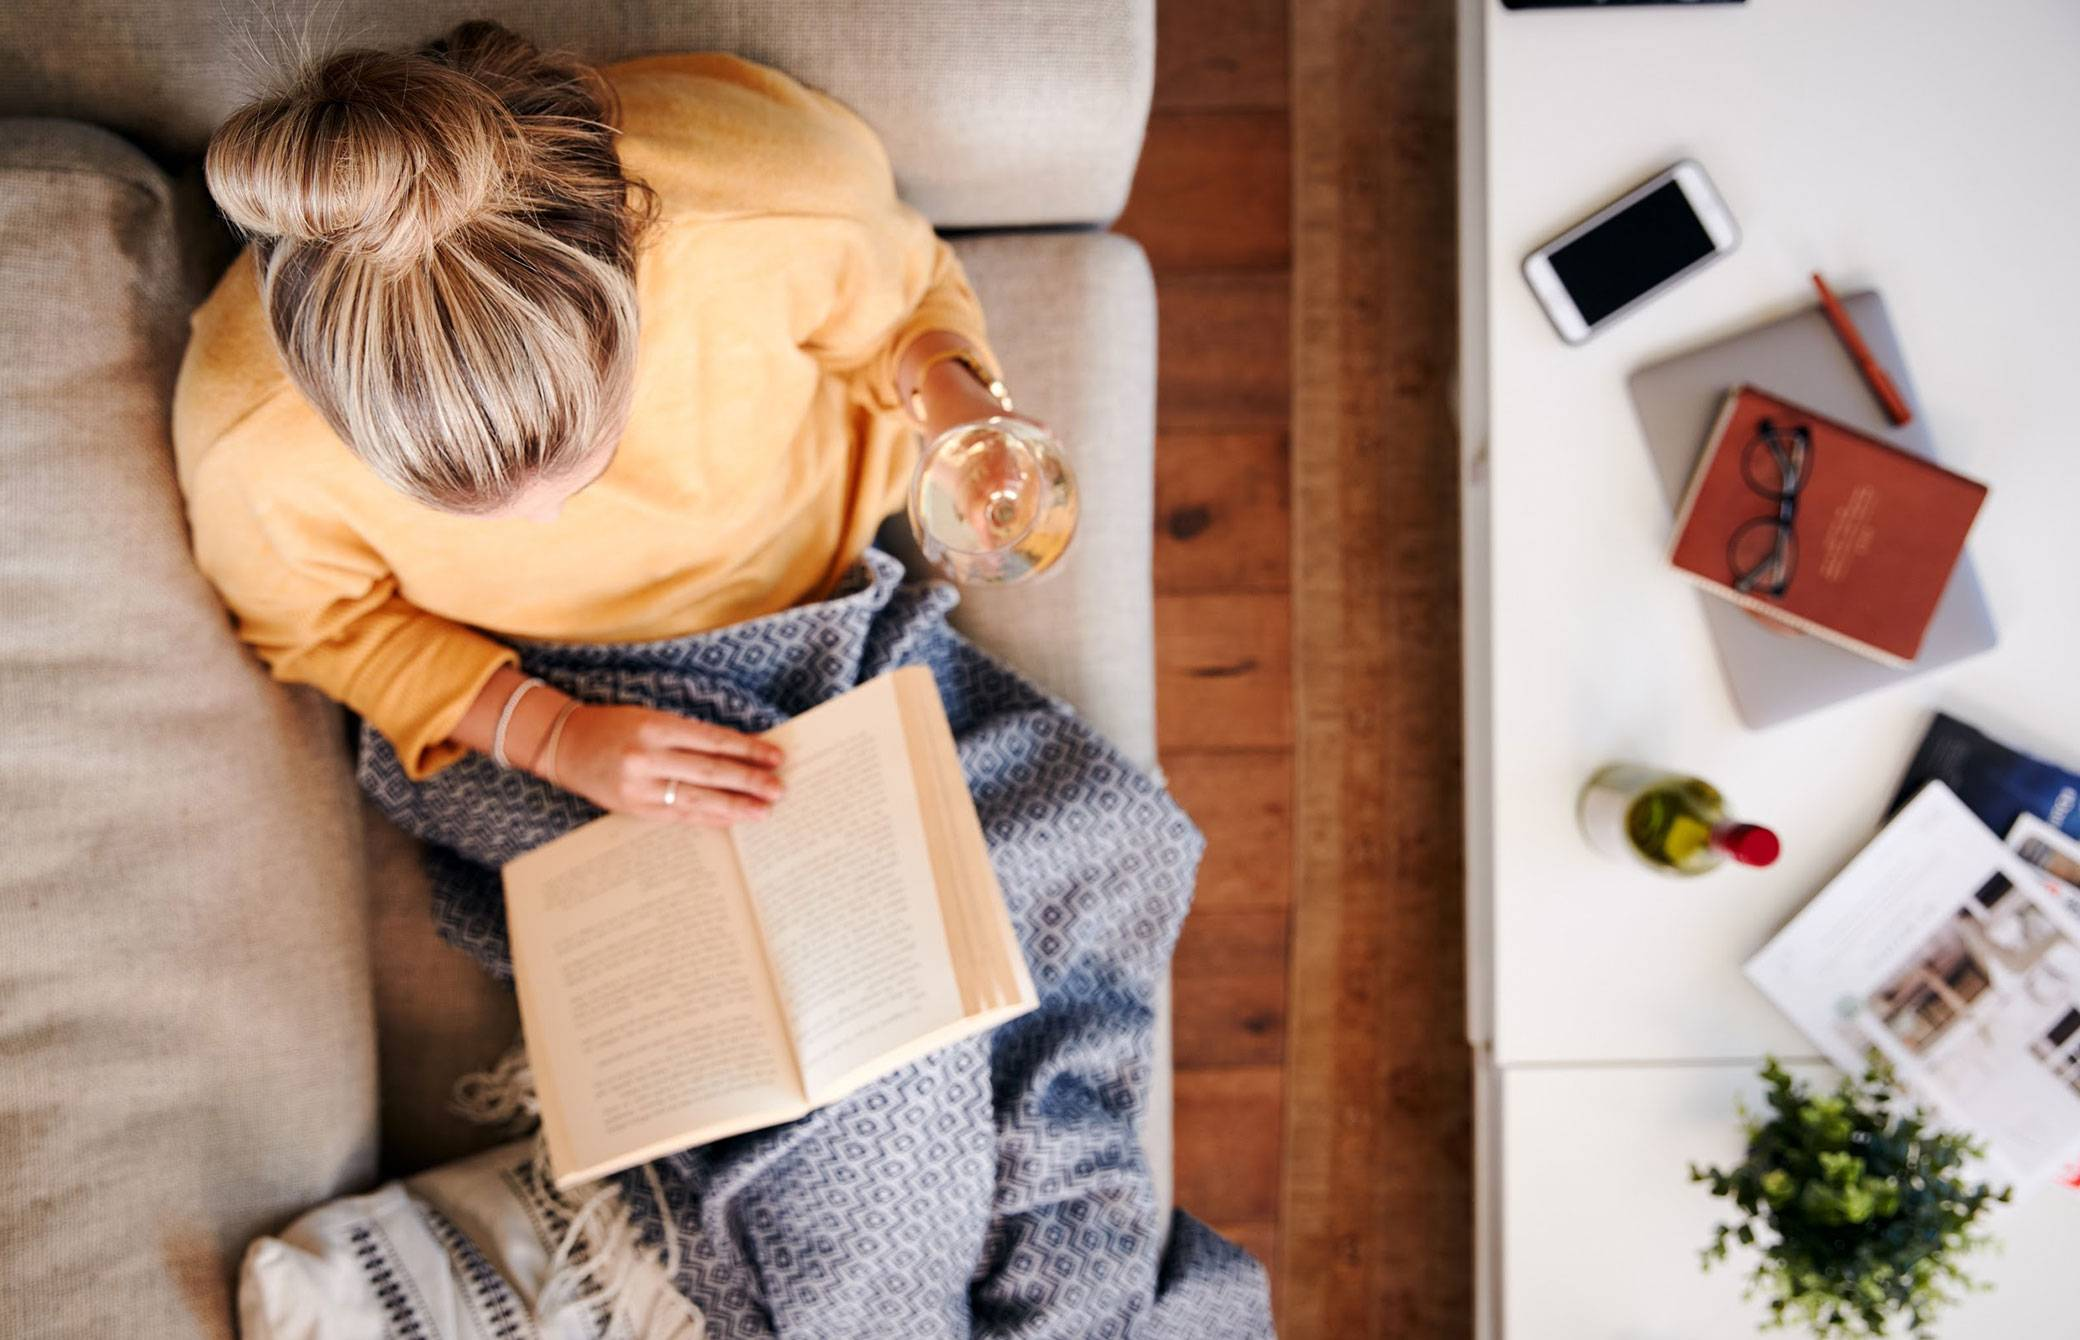 Overhead shot of woman reading on the couch